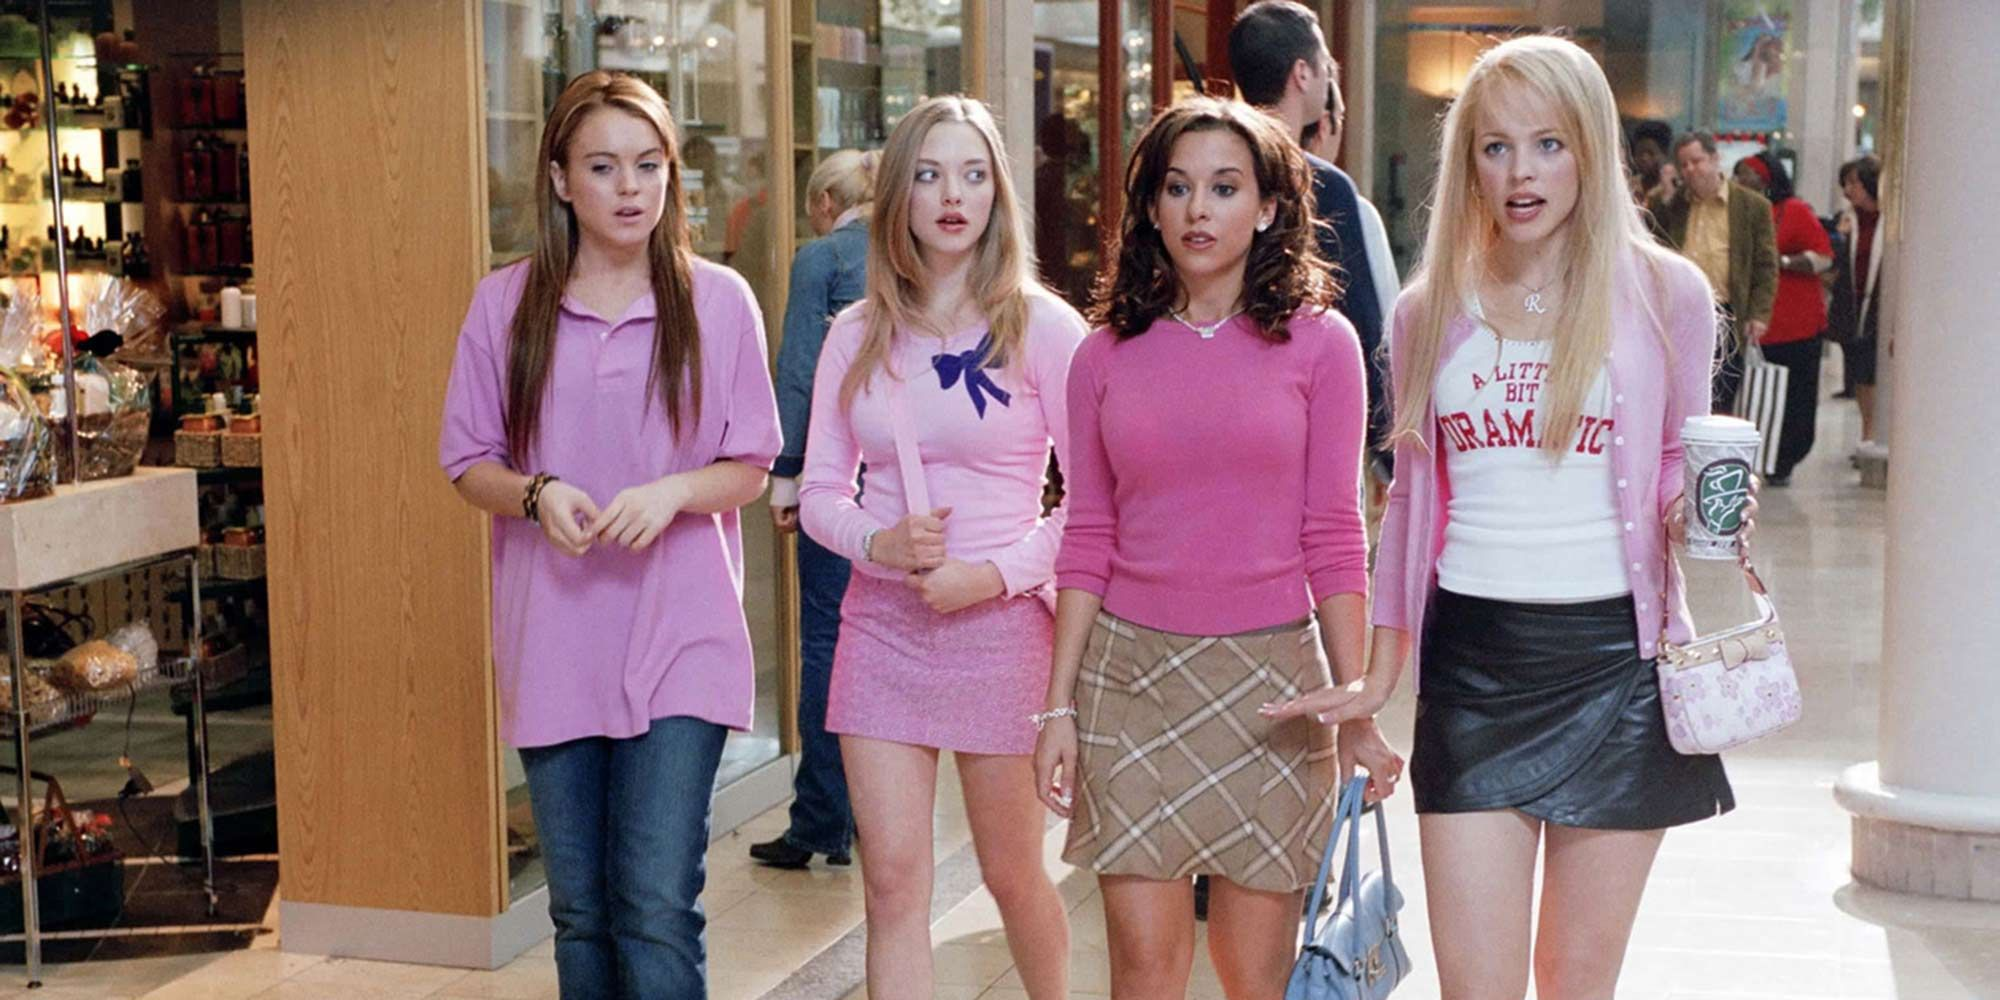 Tina Fey New Mean Girls Film Based On Hit Musical I'm 5'2, i wanna dance with you, and im sophisticated fun. tina fey new mean girls film based on